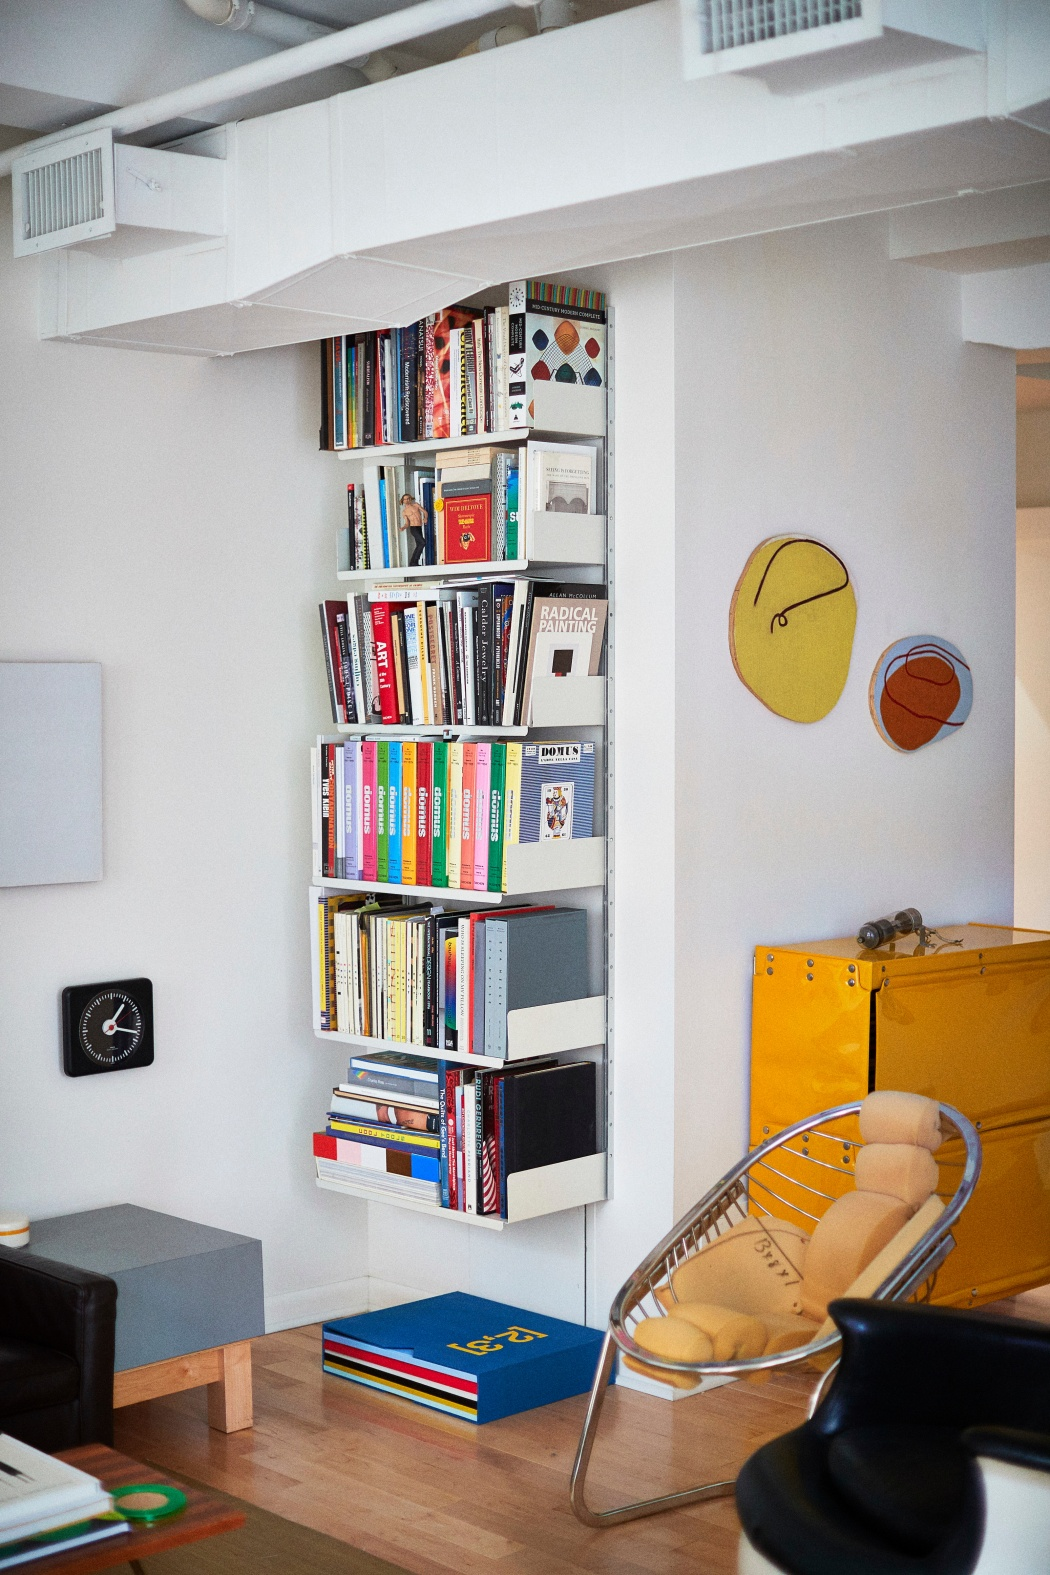 Sue and Alan Ravitz's 606 Universal Shelving System and Otto Zapf Softline Series storage system in New York